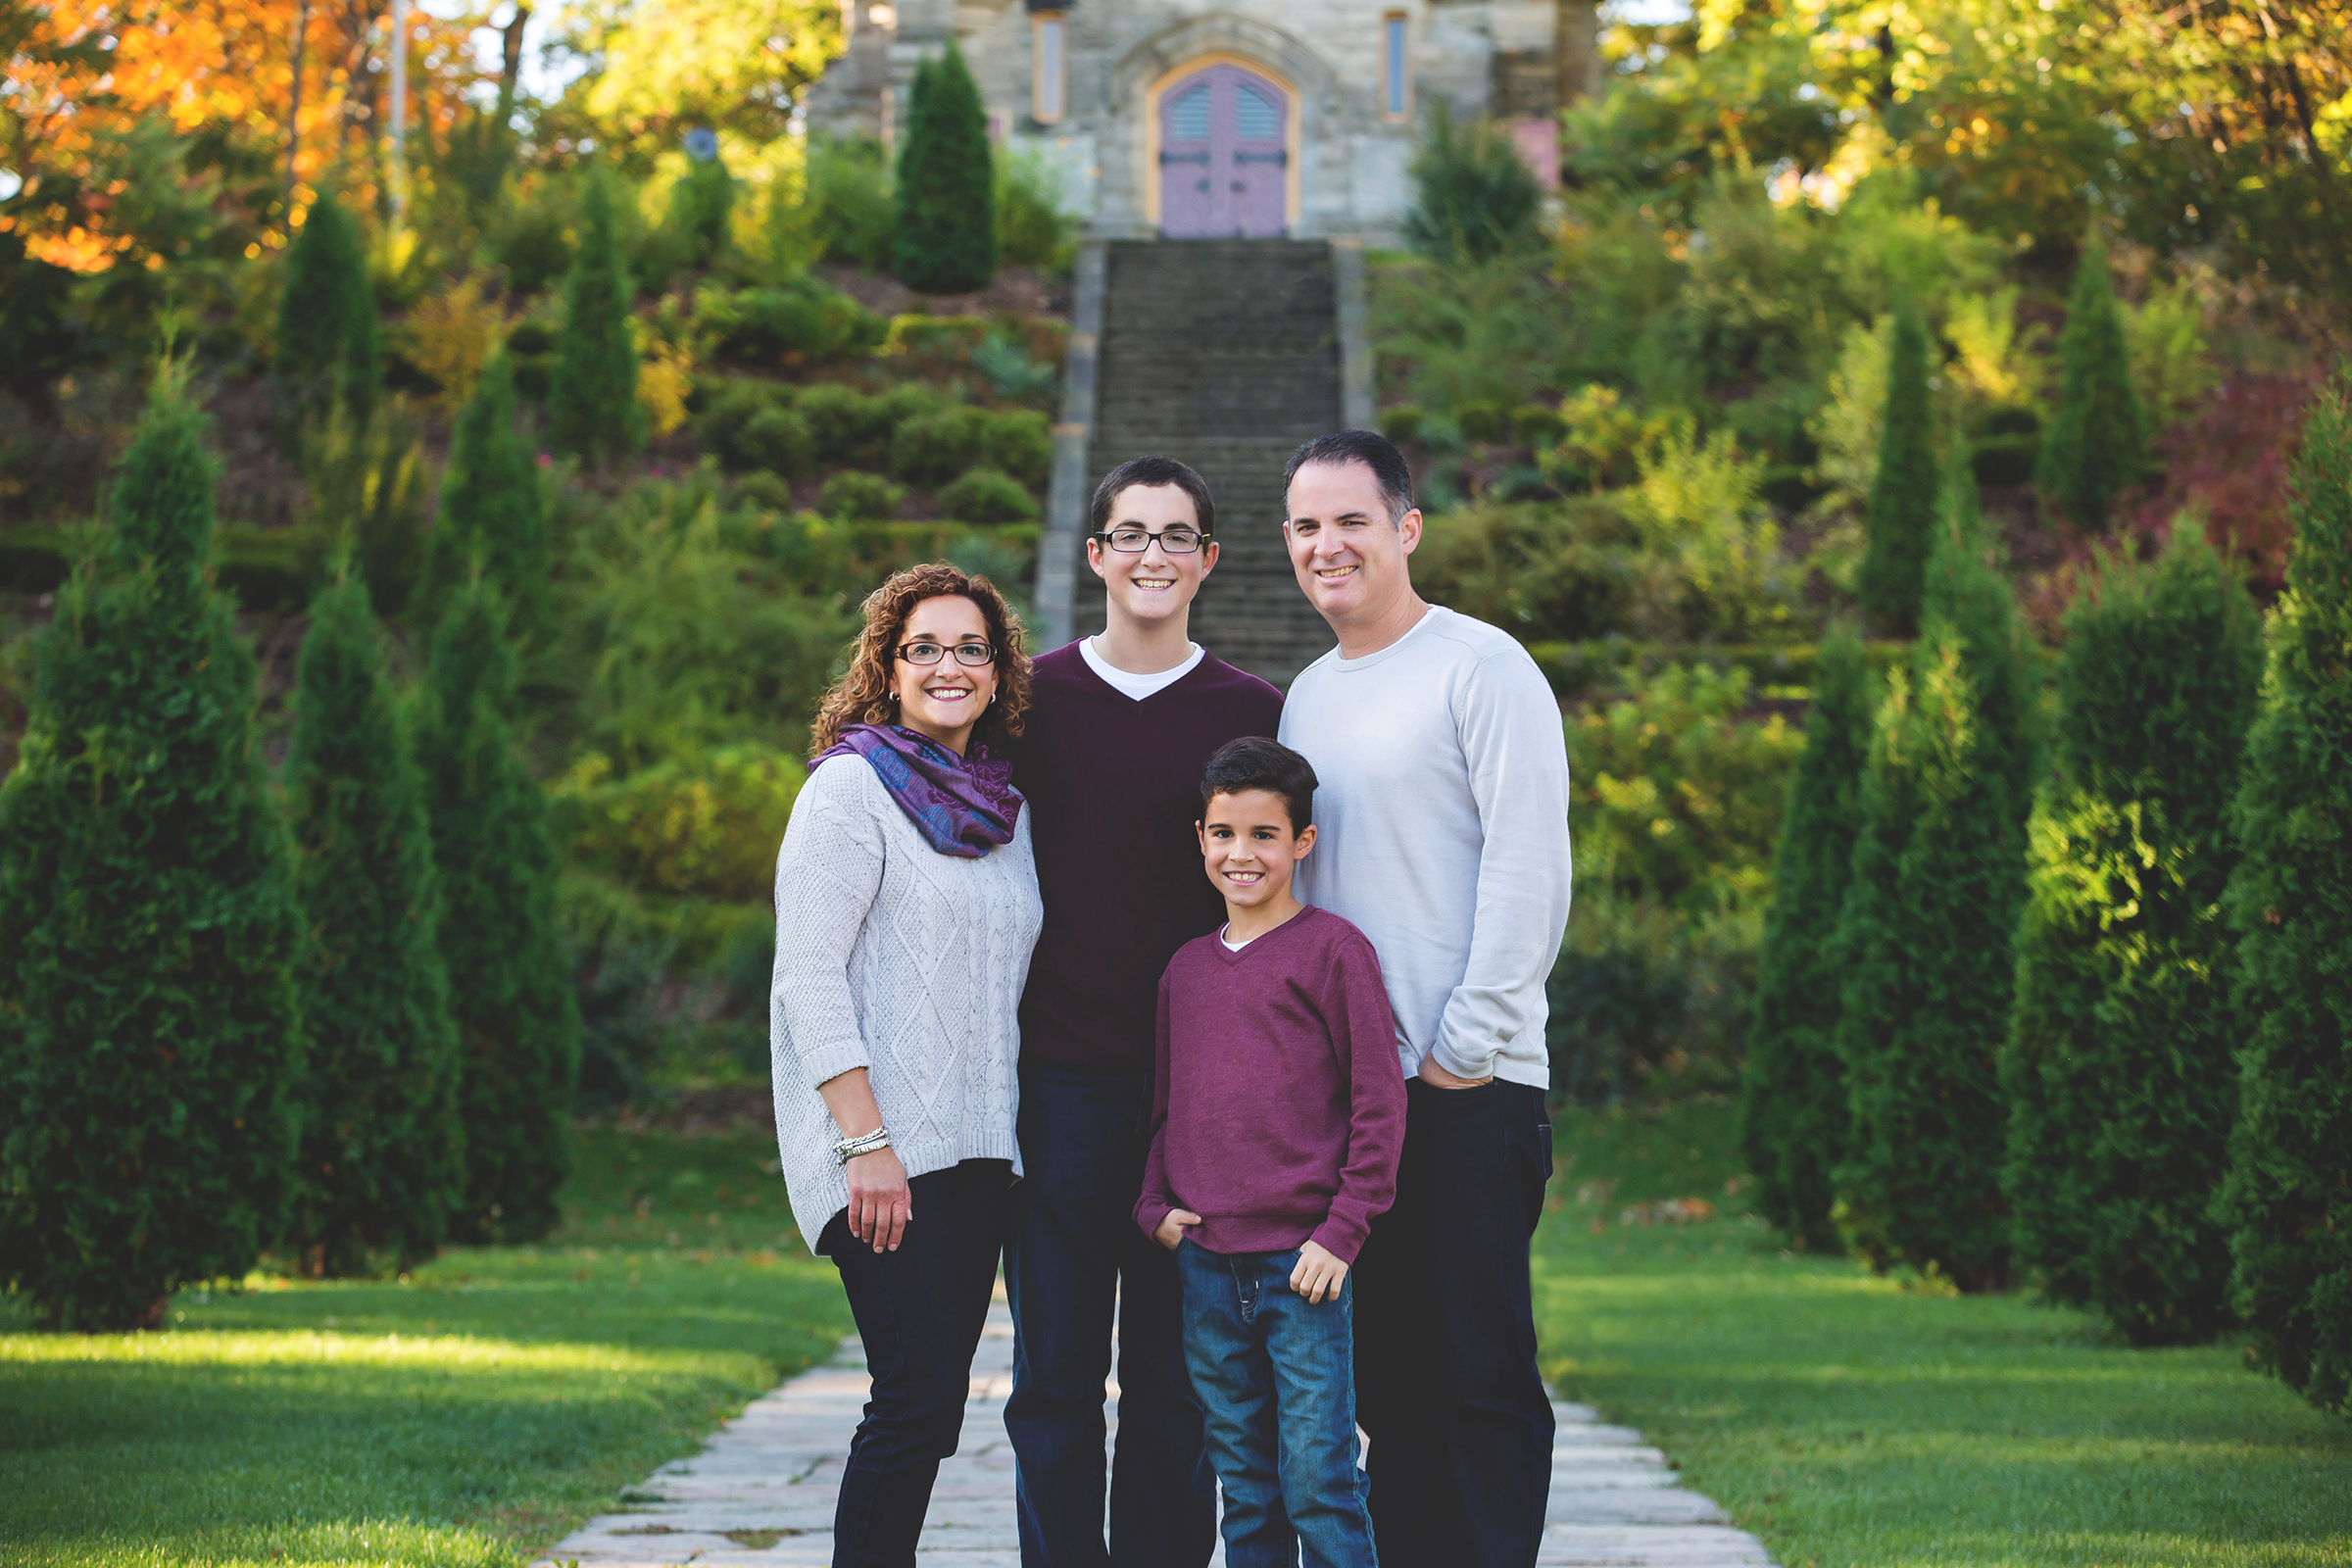 Family-Portraits-Hamilton-Stoney-Creek-Oakville-Burlington-Niagara-Photography-Moments-by-Lauren-Photographer-Lifestyle-Photo-Image5.png